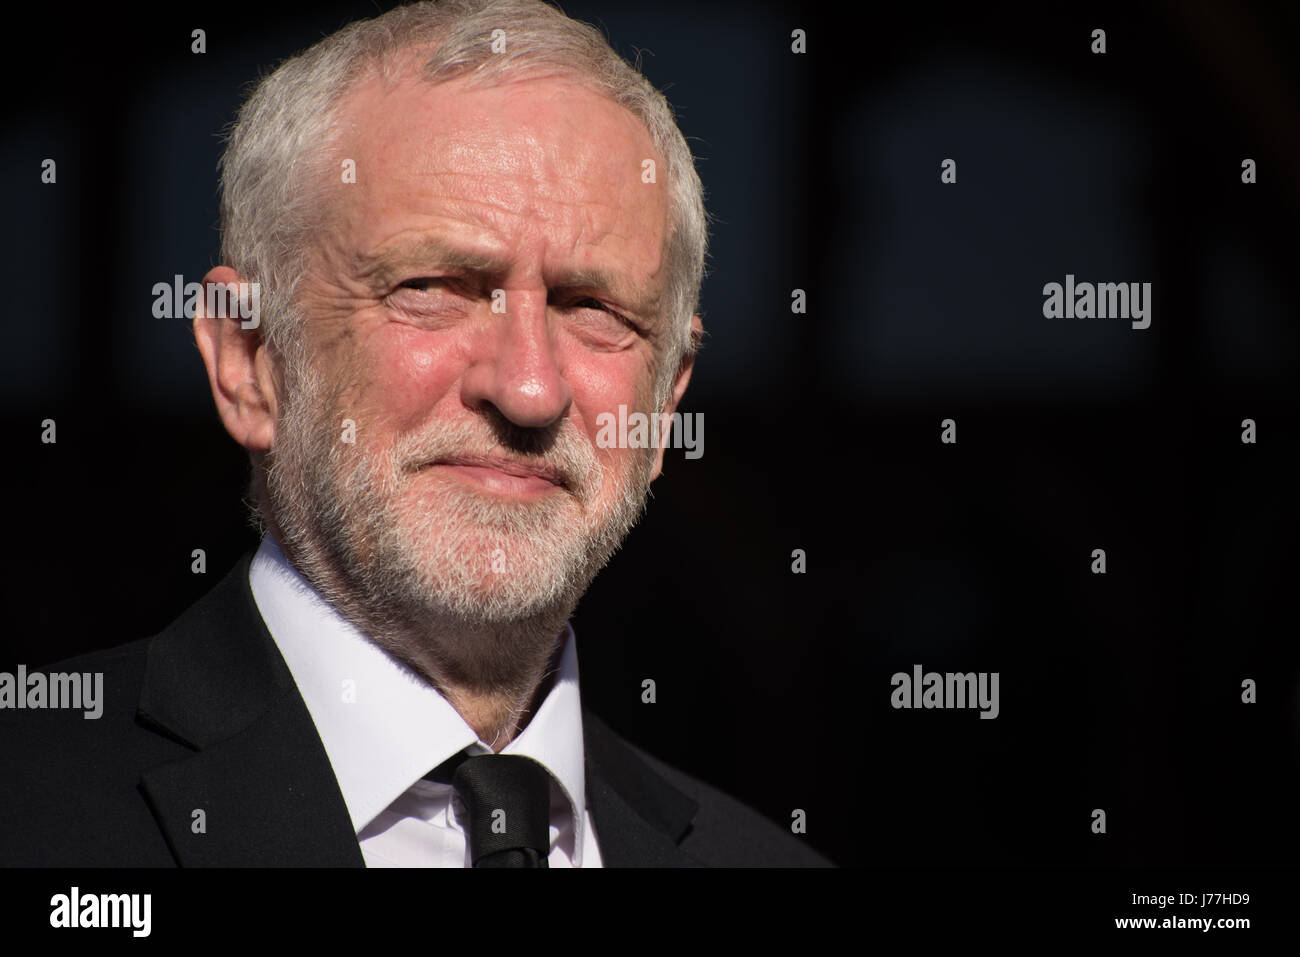 Manchester, UK. 23rd May, 2017. Rt. Hon. Jeremy Corbyn, Leader of the Labour Party and Labour Party candidate for - Stock Image